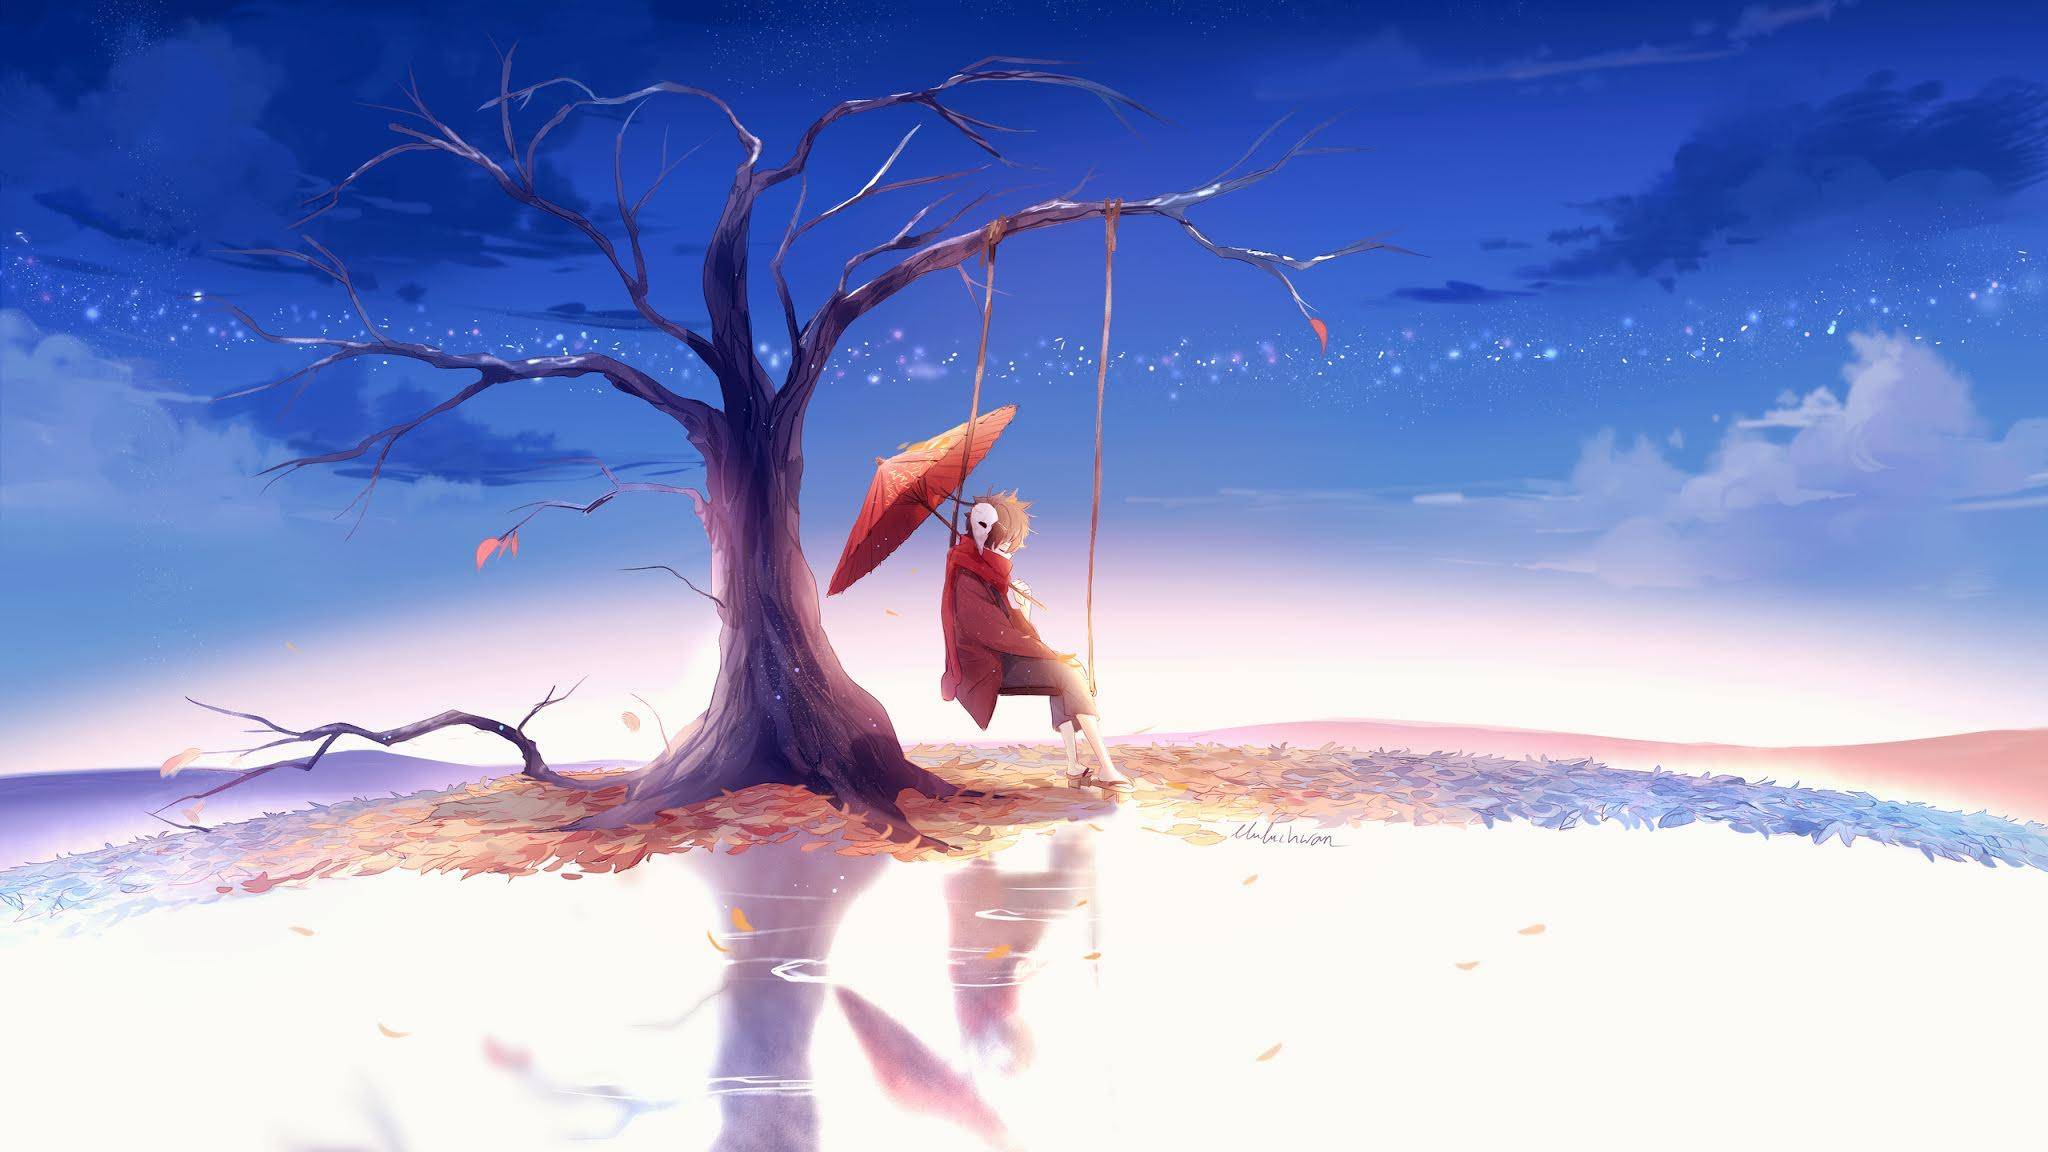 Alone Anime Boy Wallpapers - Wallpaper Cave